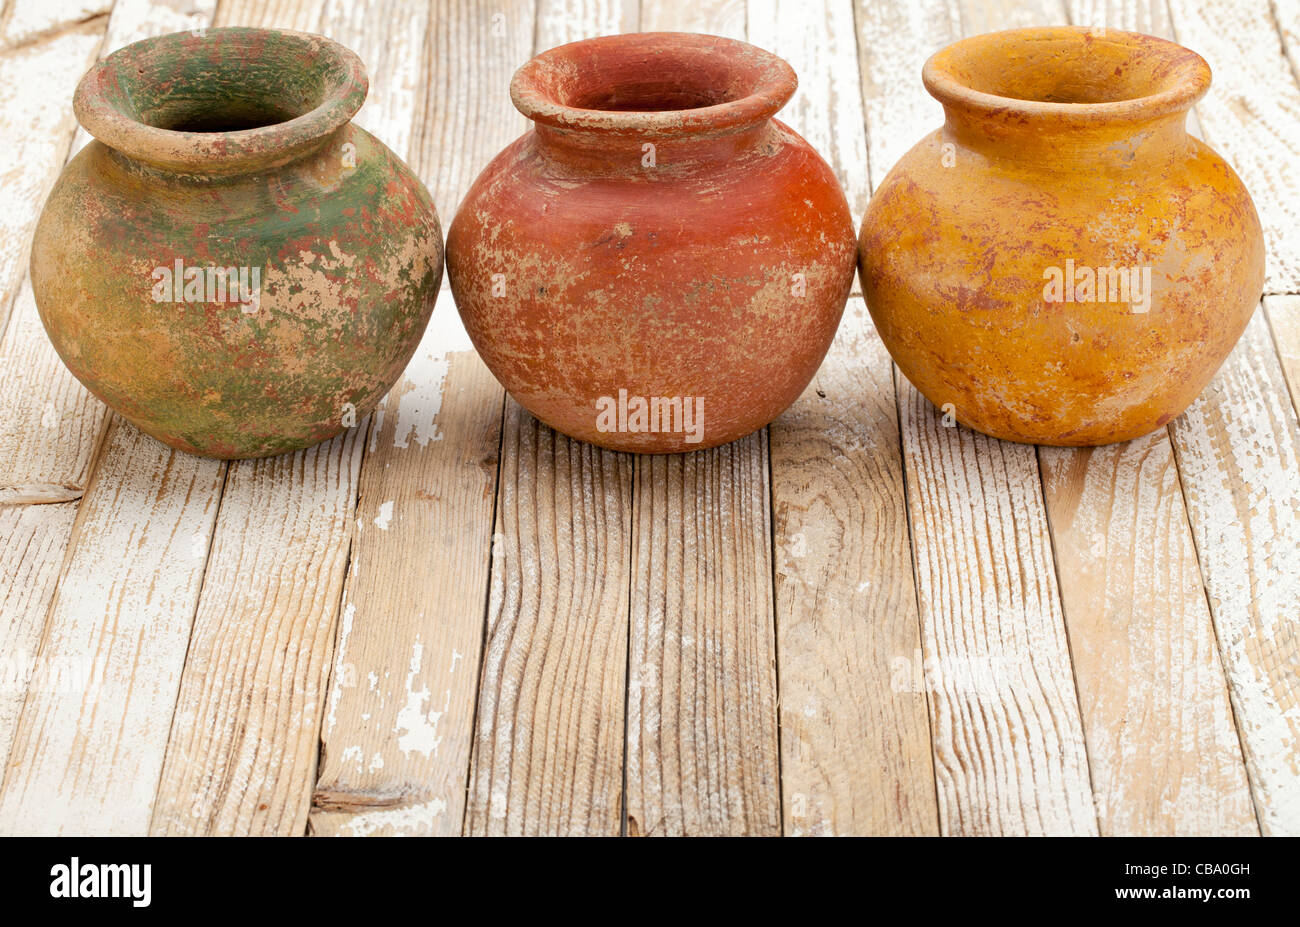 three small clay plant pots (mass produced planter) with rough, grunge finish, on white rustic wood background - Stock Image